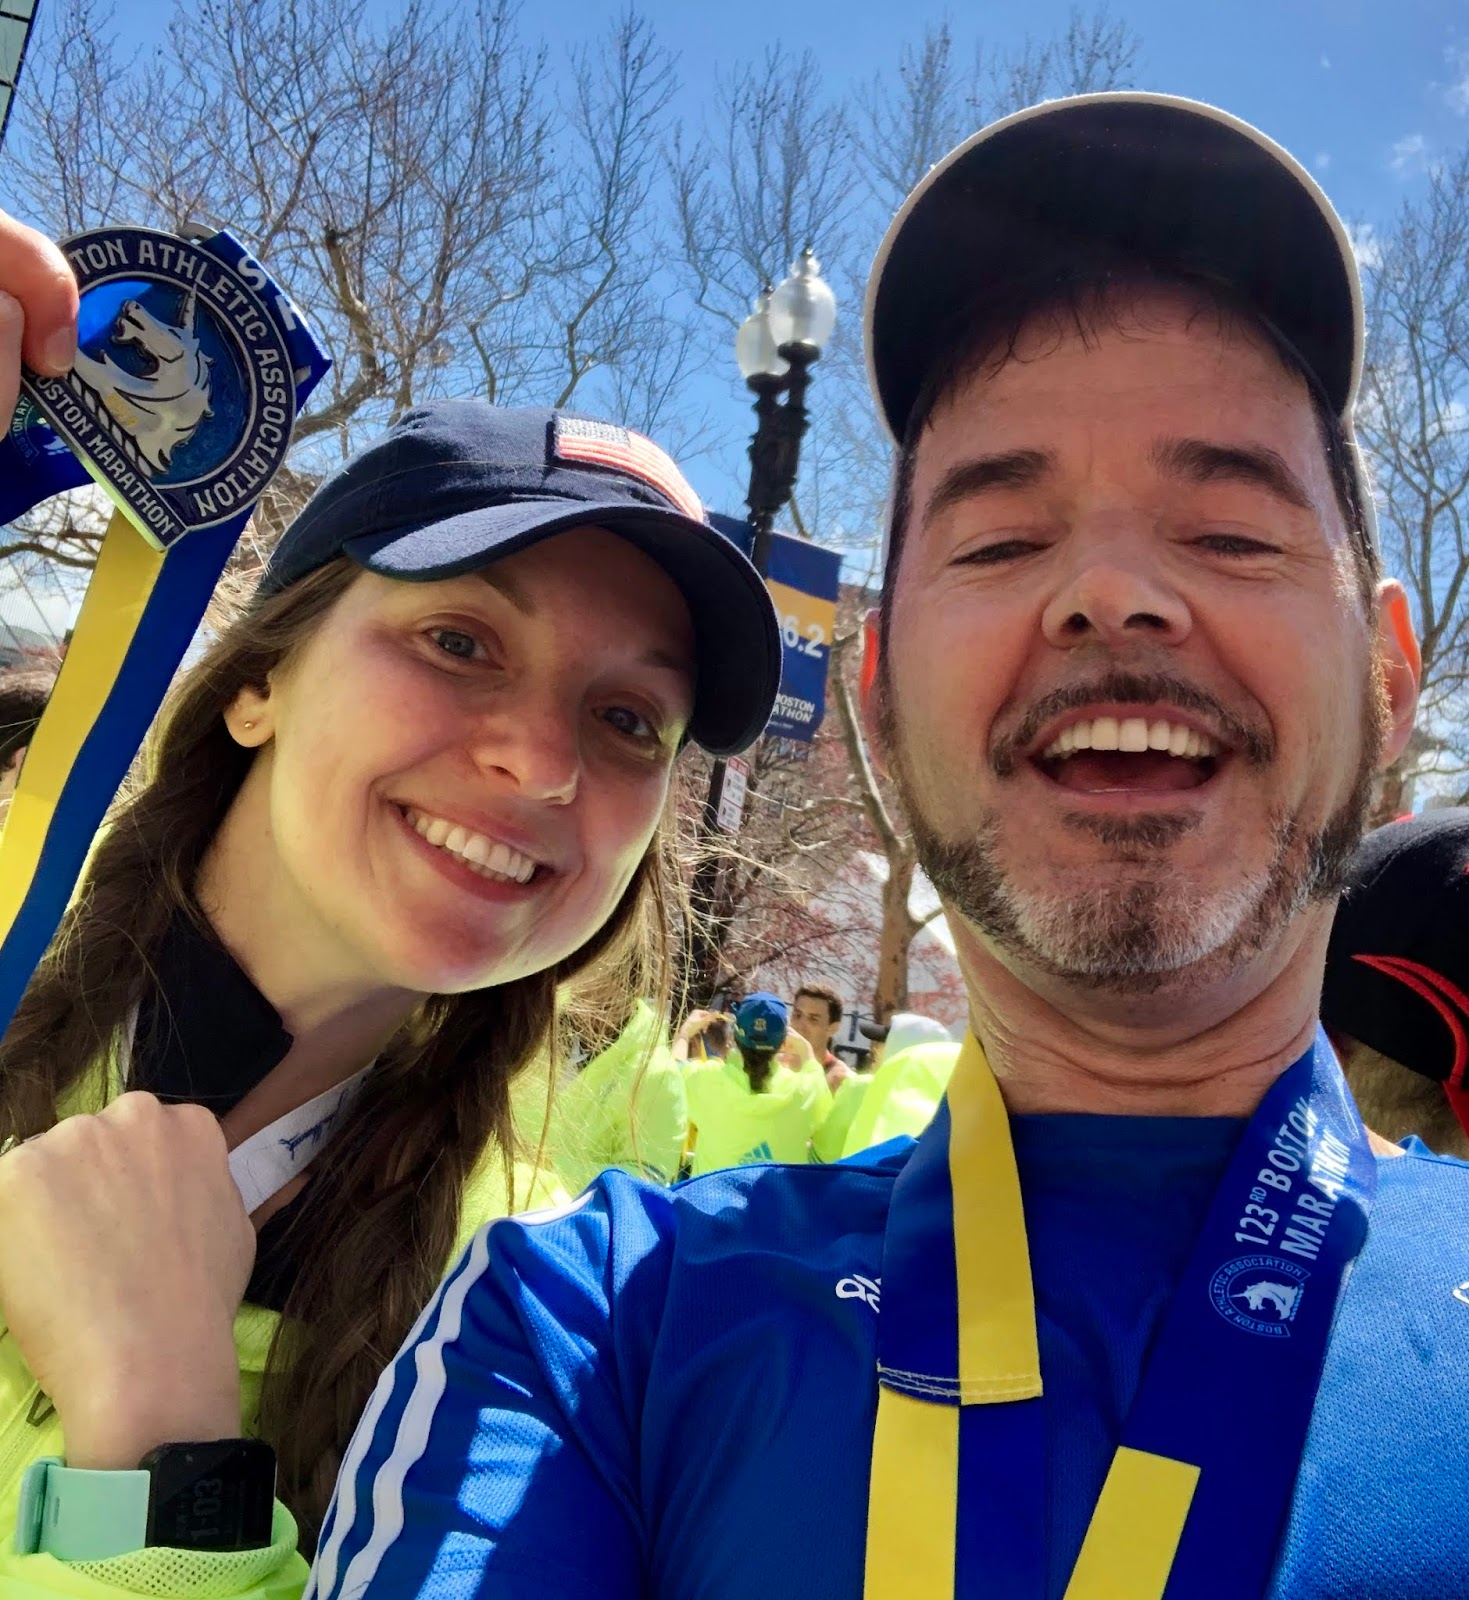 A Trail Runner's Blog: Boston XV - A Fountain of Inspiration